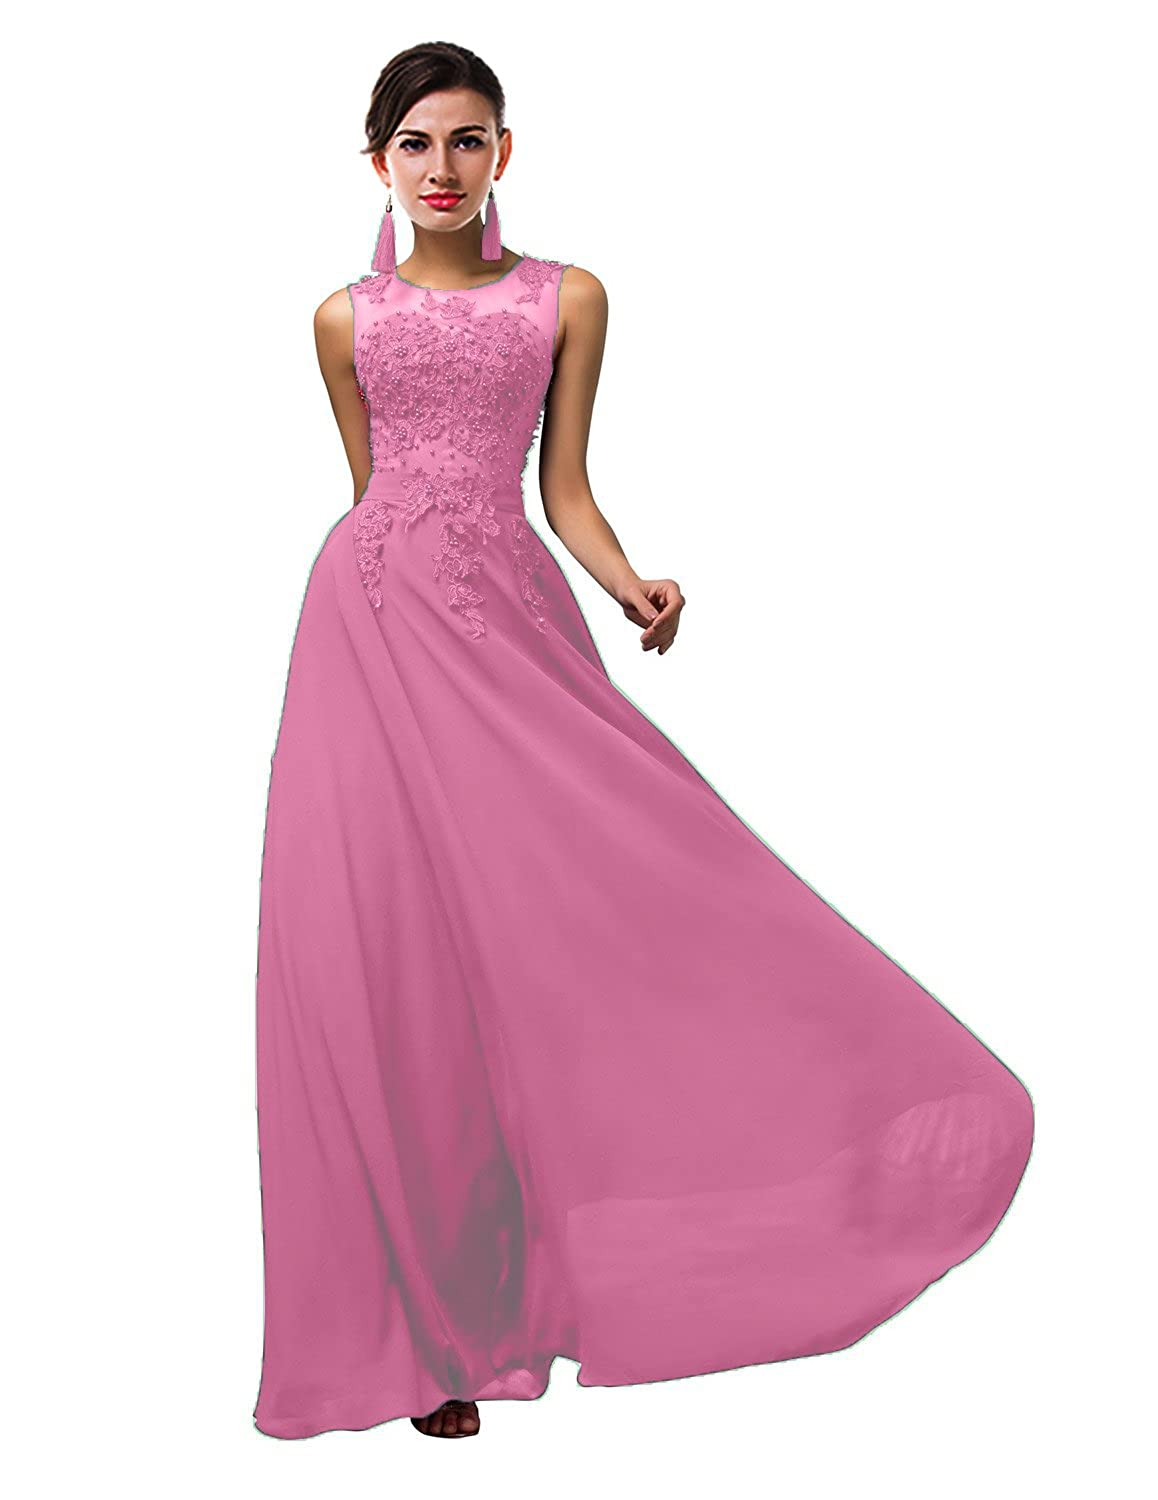 Hot Pink CaliaDress Women Tulle Appliques Long Bridesmaid Dress Prom Evening Gowns C002LF